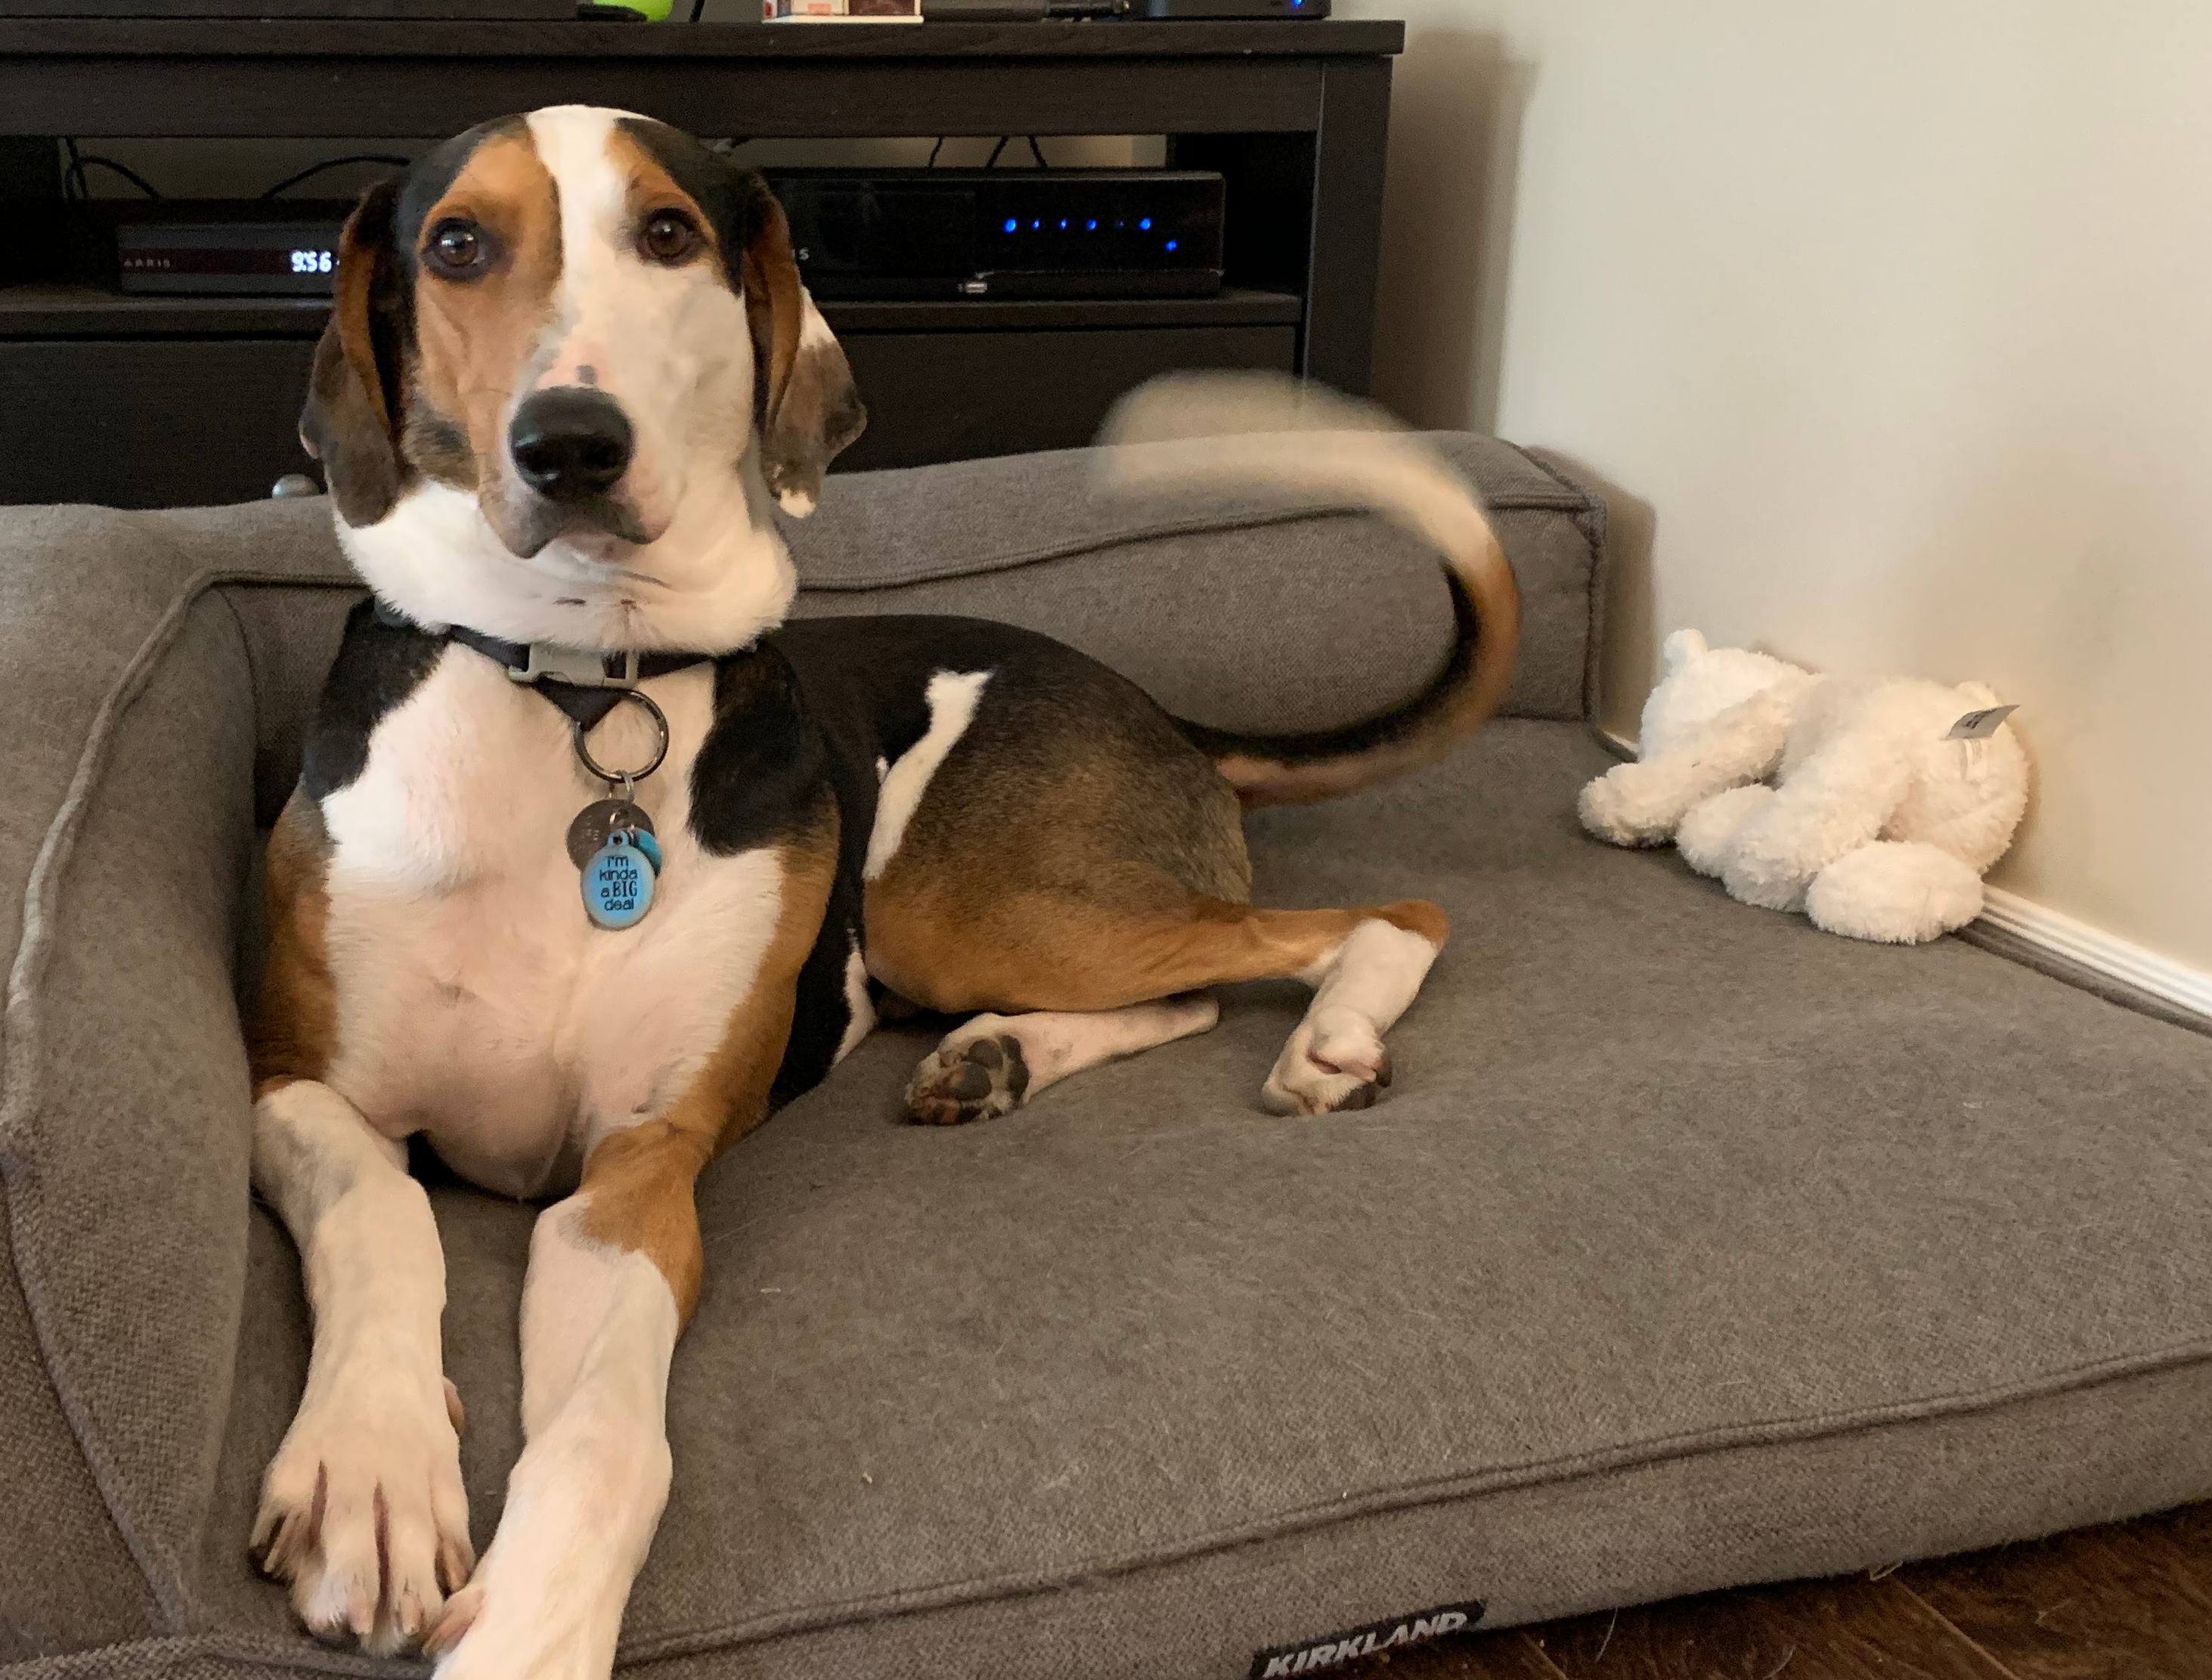 A Treeing Walker Coon Hound — Greyhound cross: Mr. T is black, white & tan. He is lying on a dog bed, head up, tail wagging.